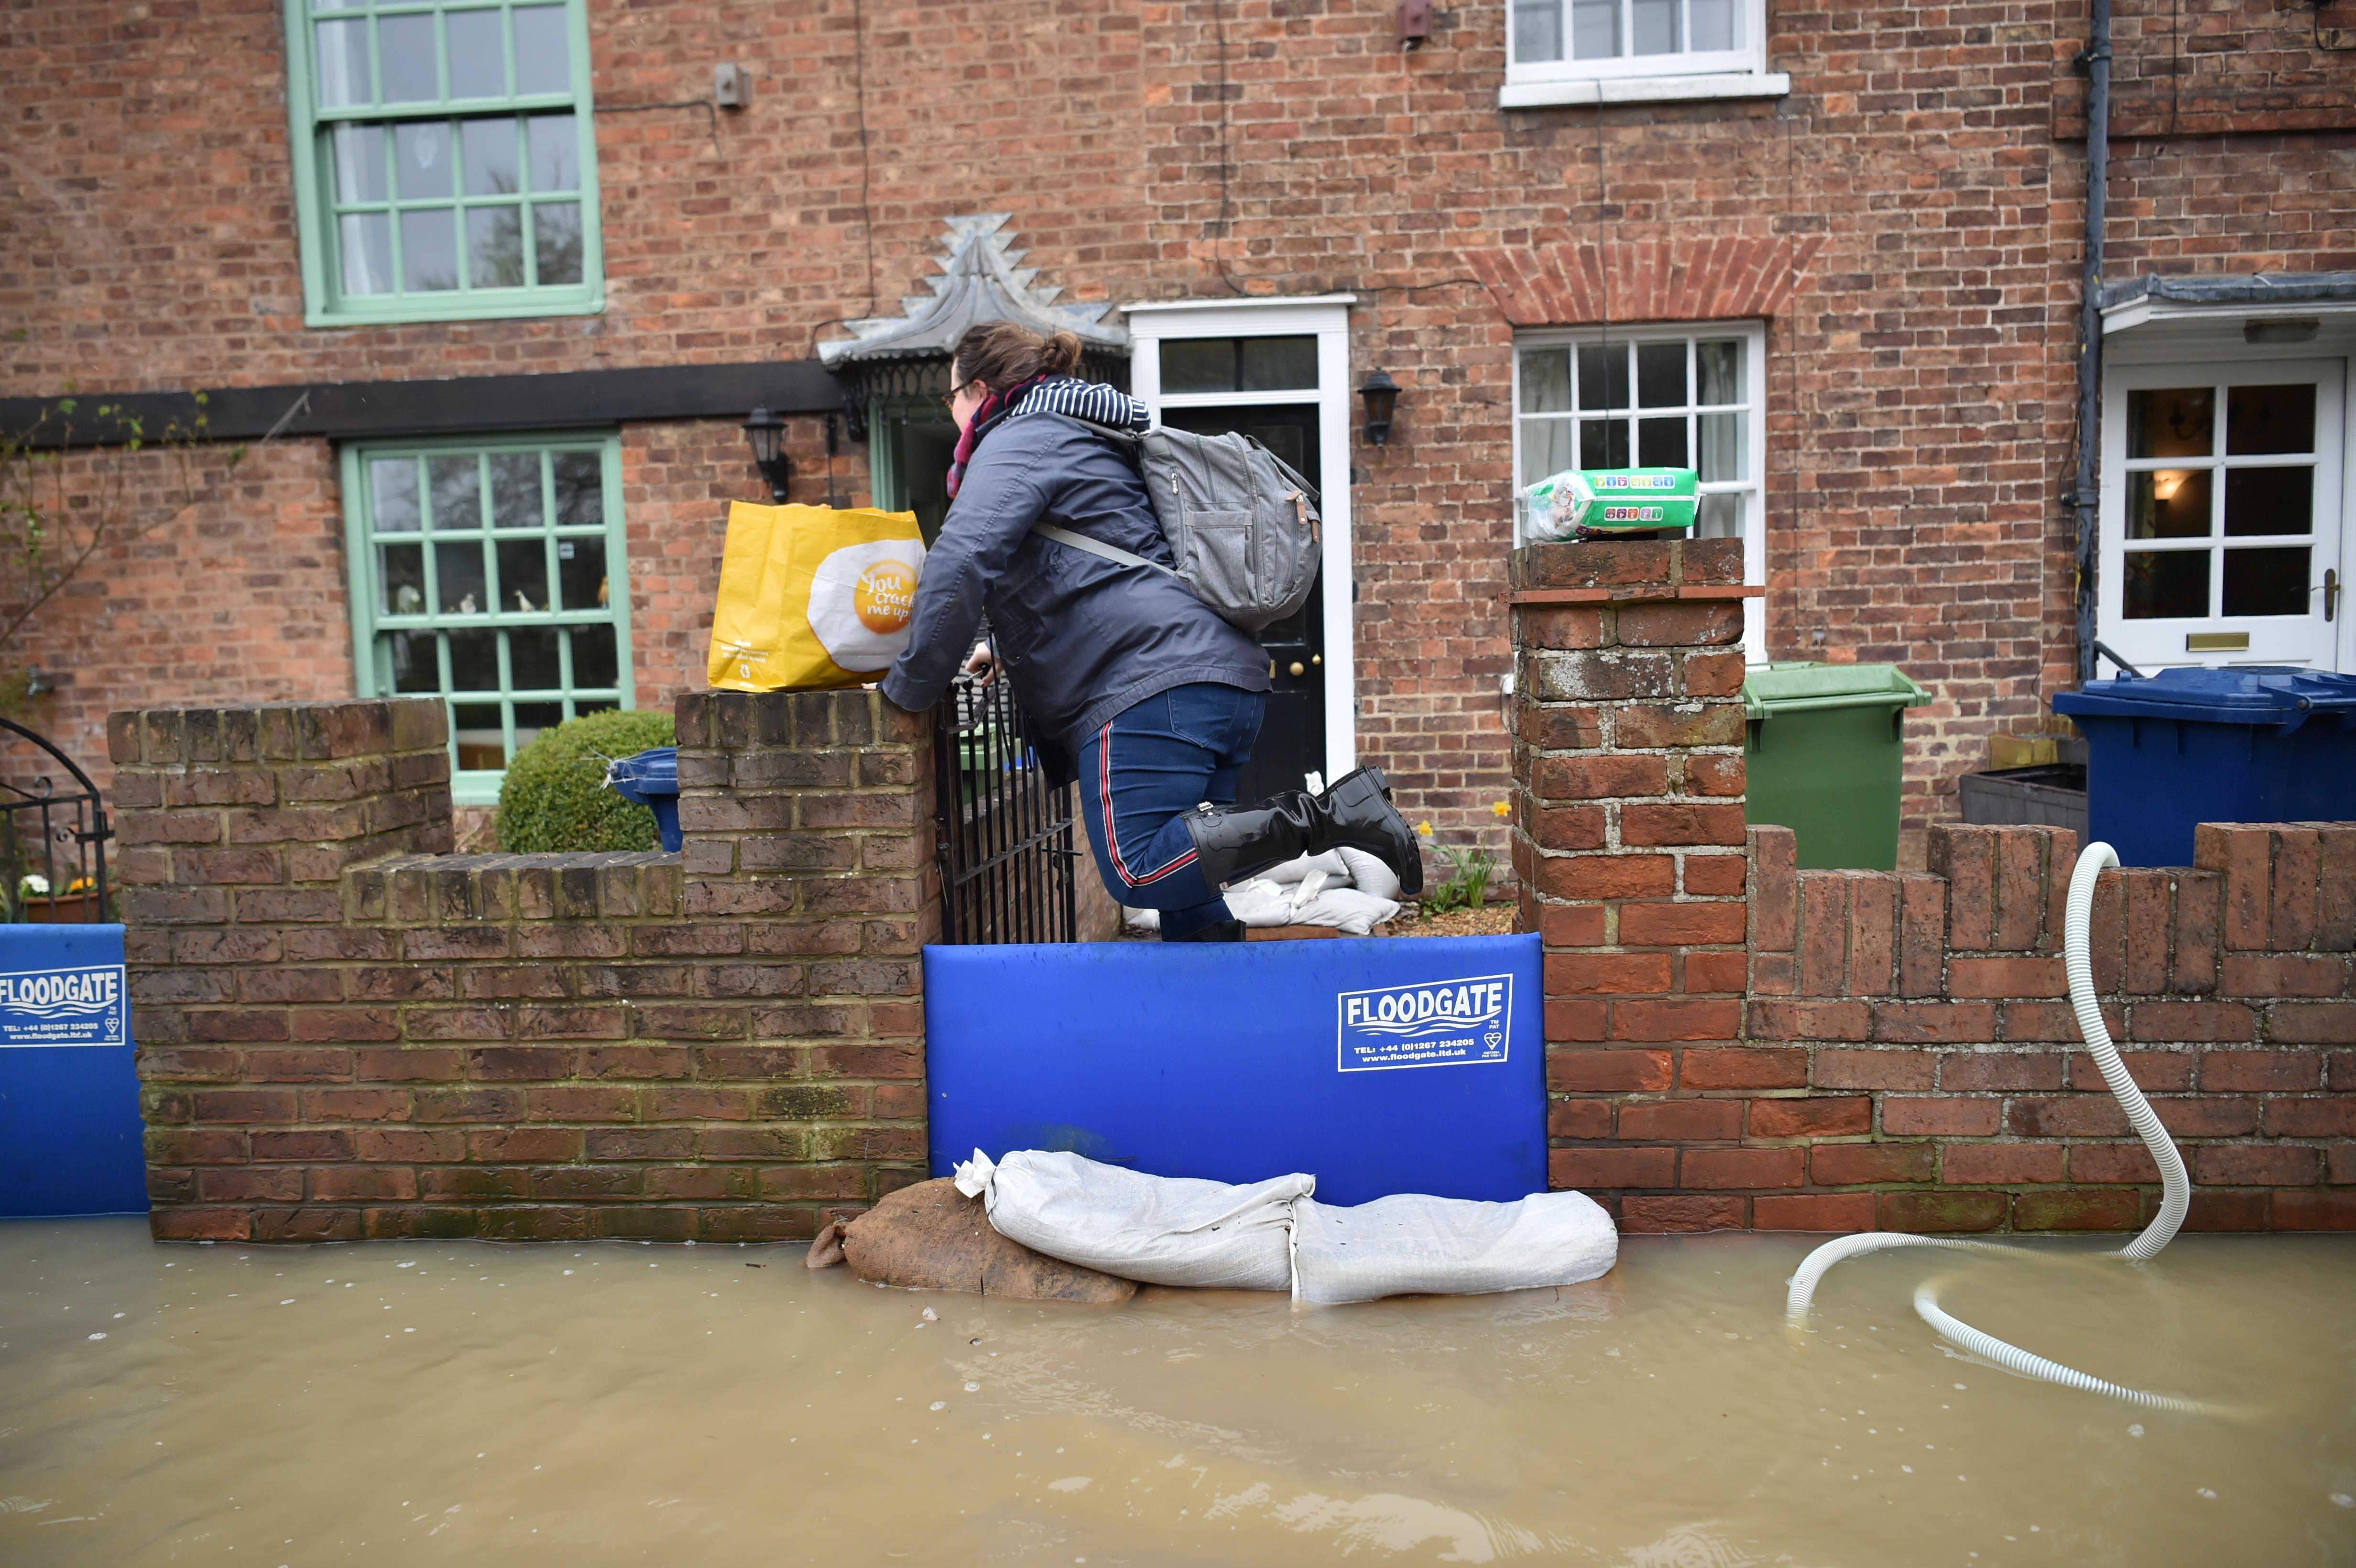 A woman carrying shopping bags through flood water, as pumps and flood barriers help to keep the water from flooding homes in Gloucester Road in Tewkesbury, Gloucestershire, following the aftermath of Storm Dennis.